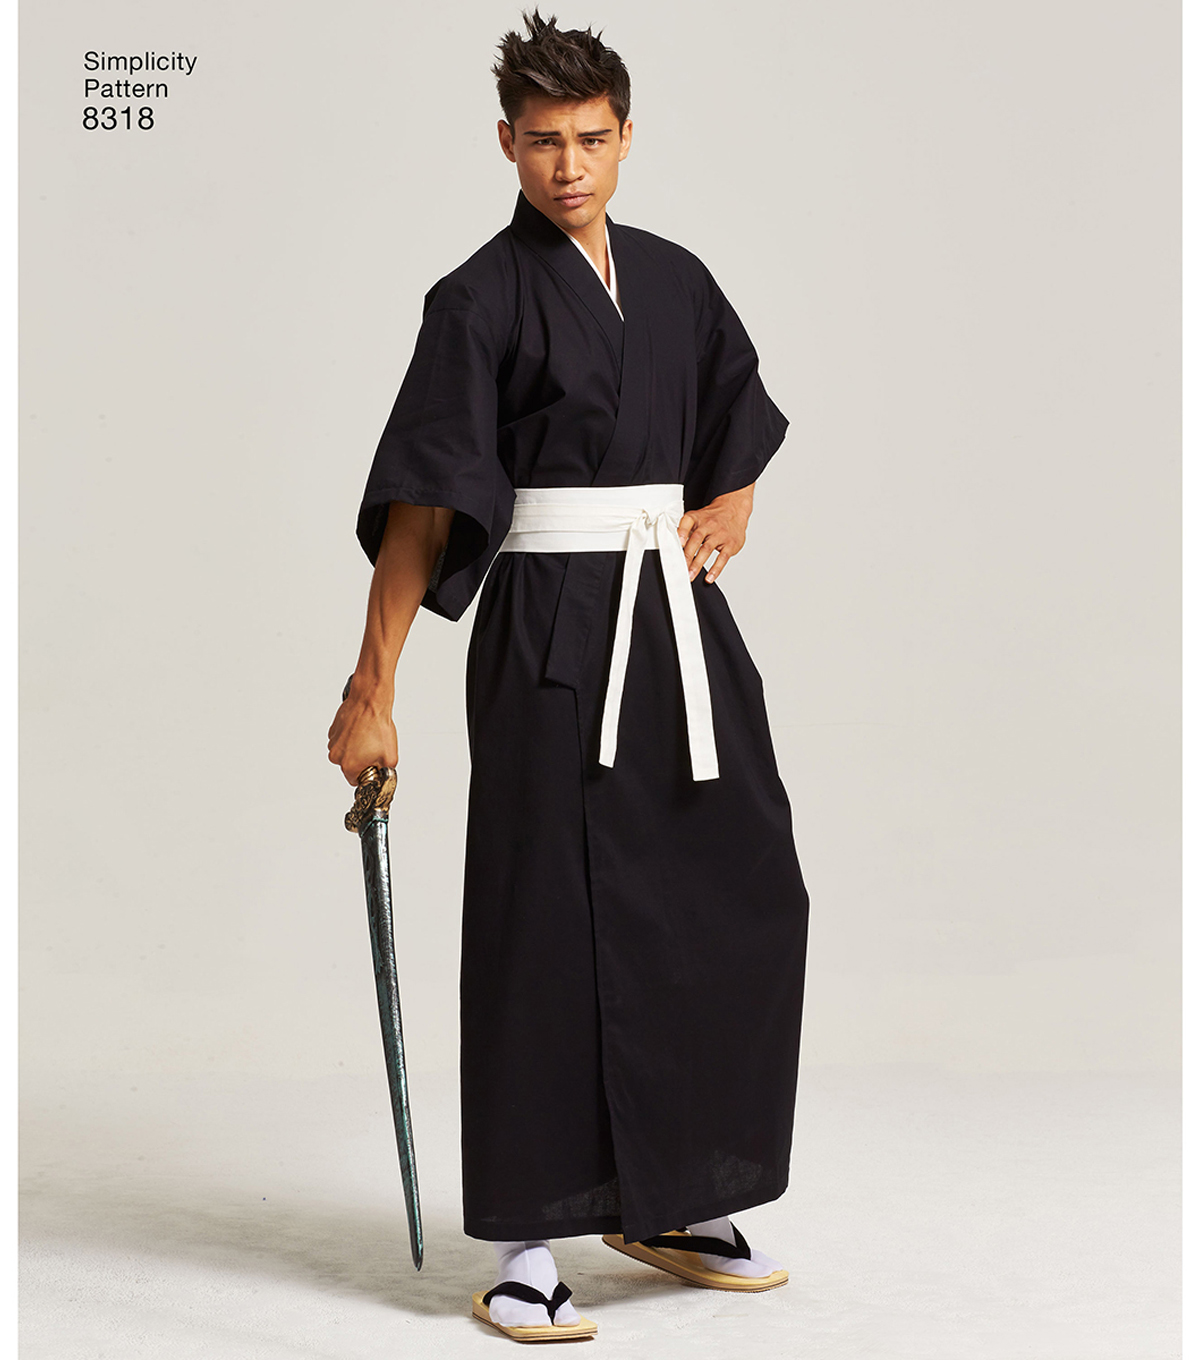 Simplicity Pattern 8318 Misses\u0027, Men\u0027s & Teens\u0027 Costumes-Size A (XS-XL)